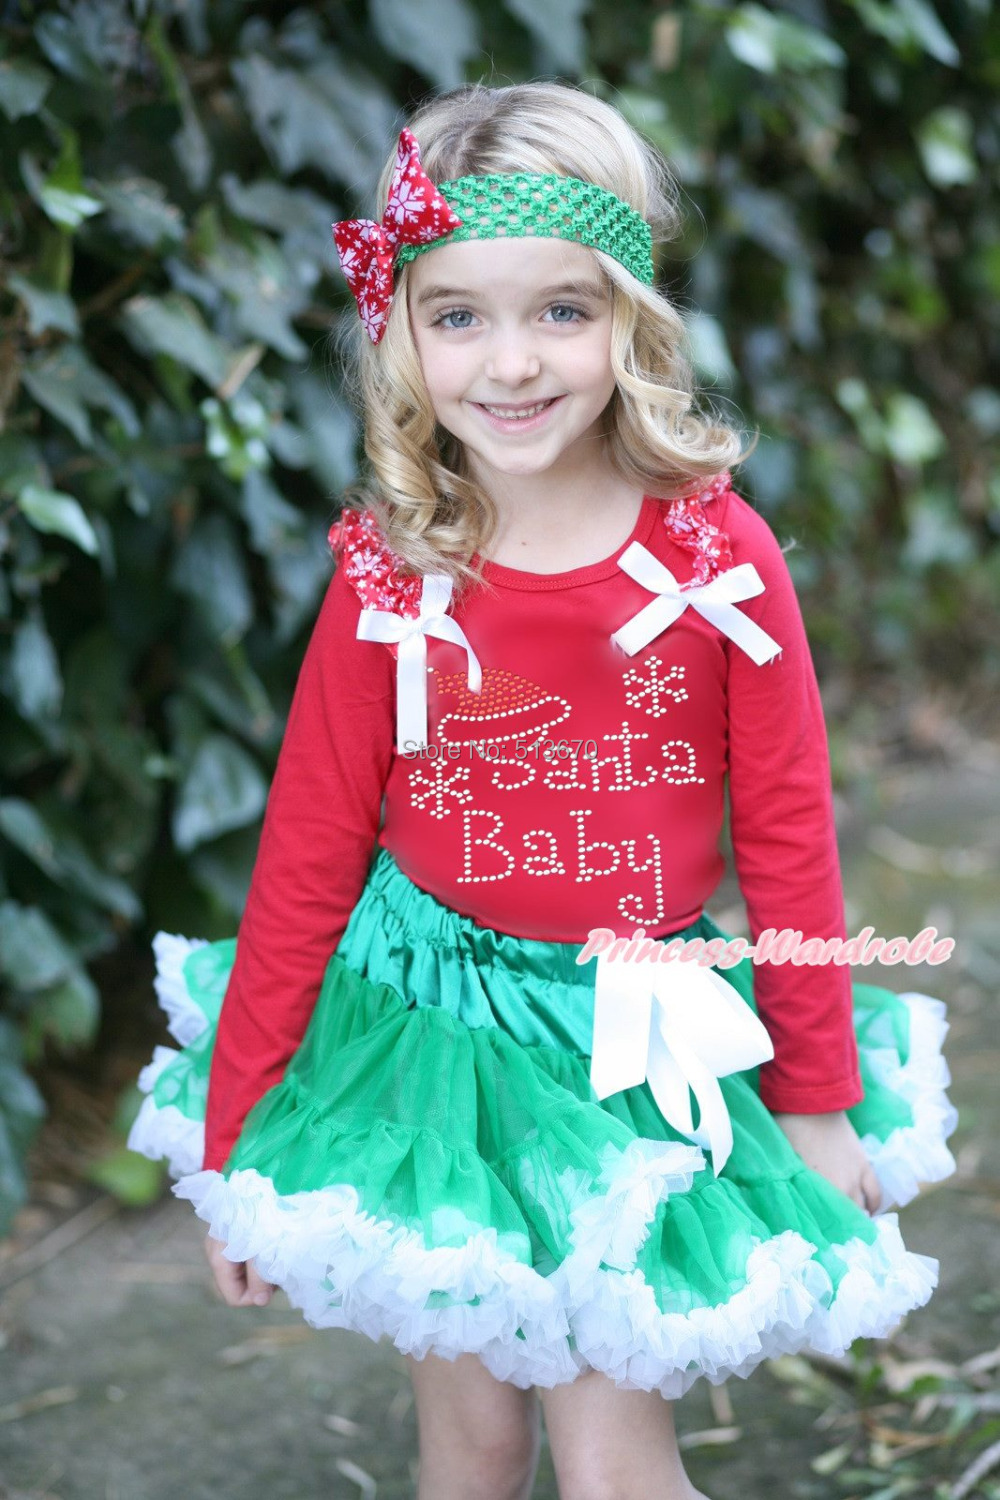 XMAS Rhinestone Baby Santa Print Red Top Green White Pettiskirt Girl Outfit 1-8Y MAMG213 цена и фото